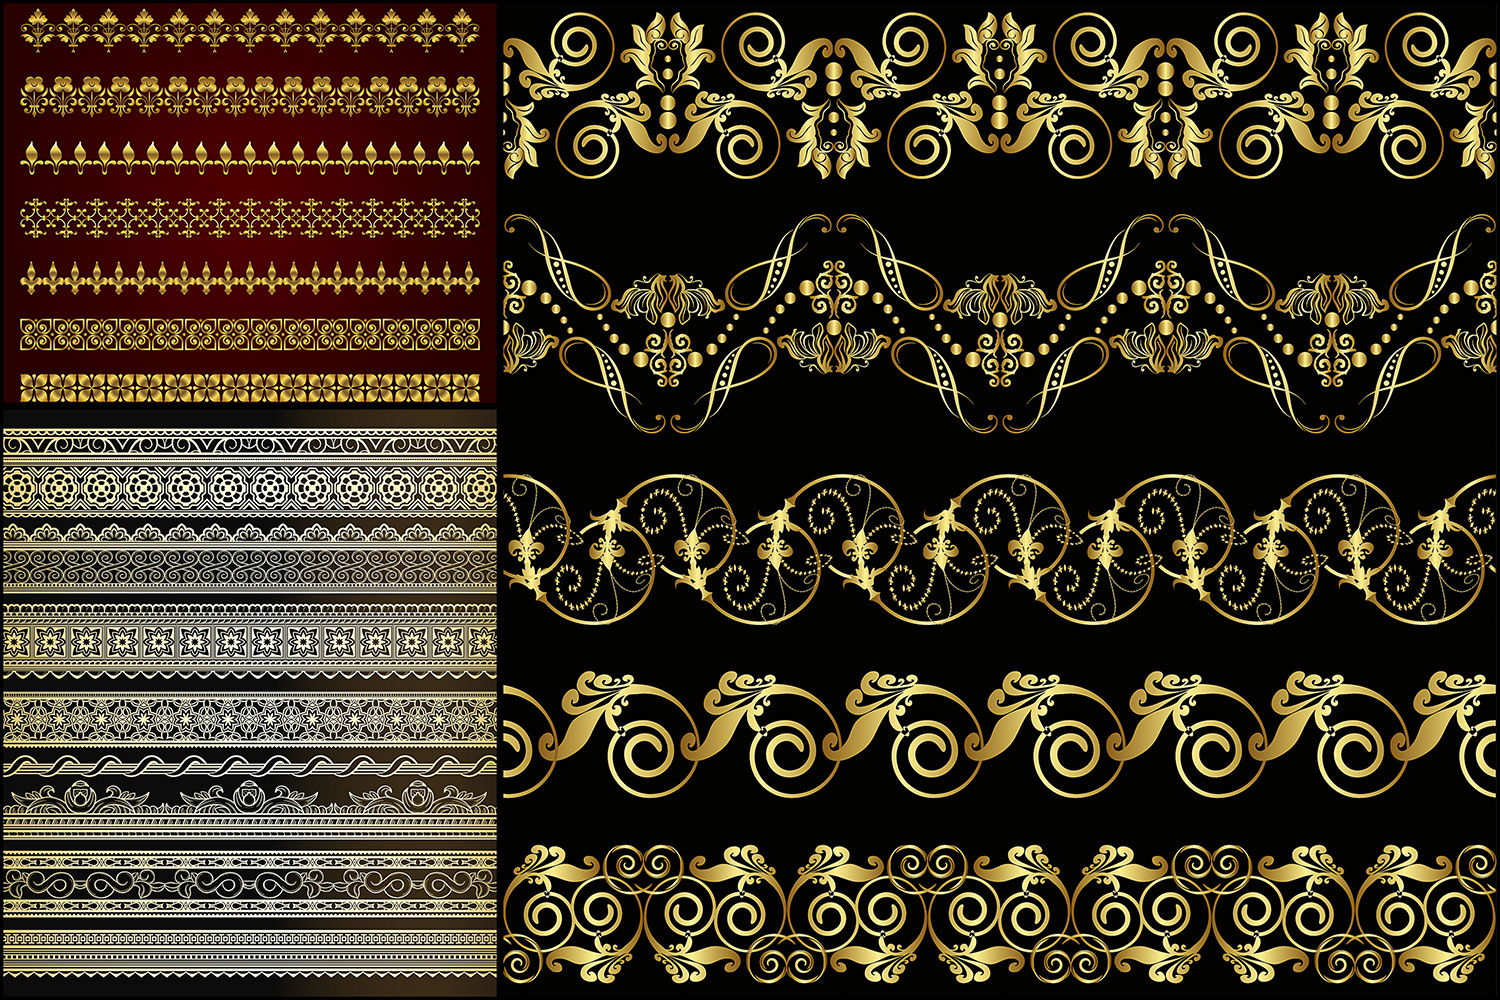 Gold ornate borders vector